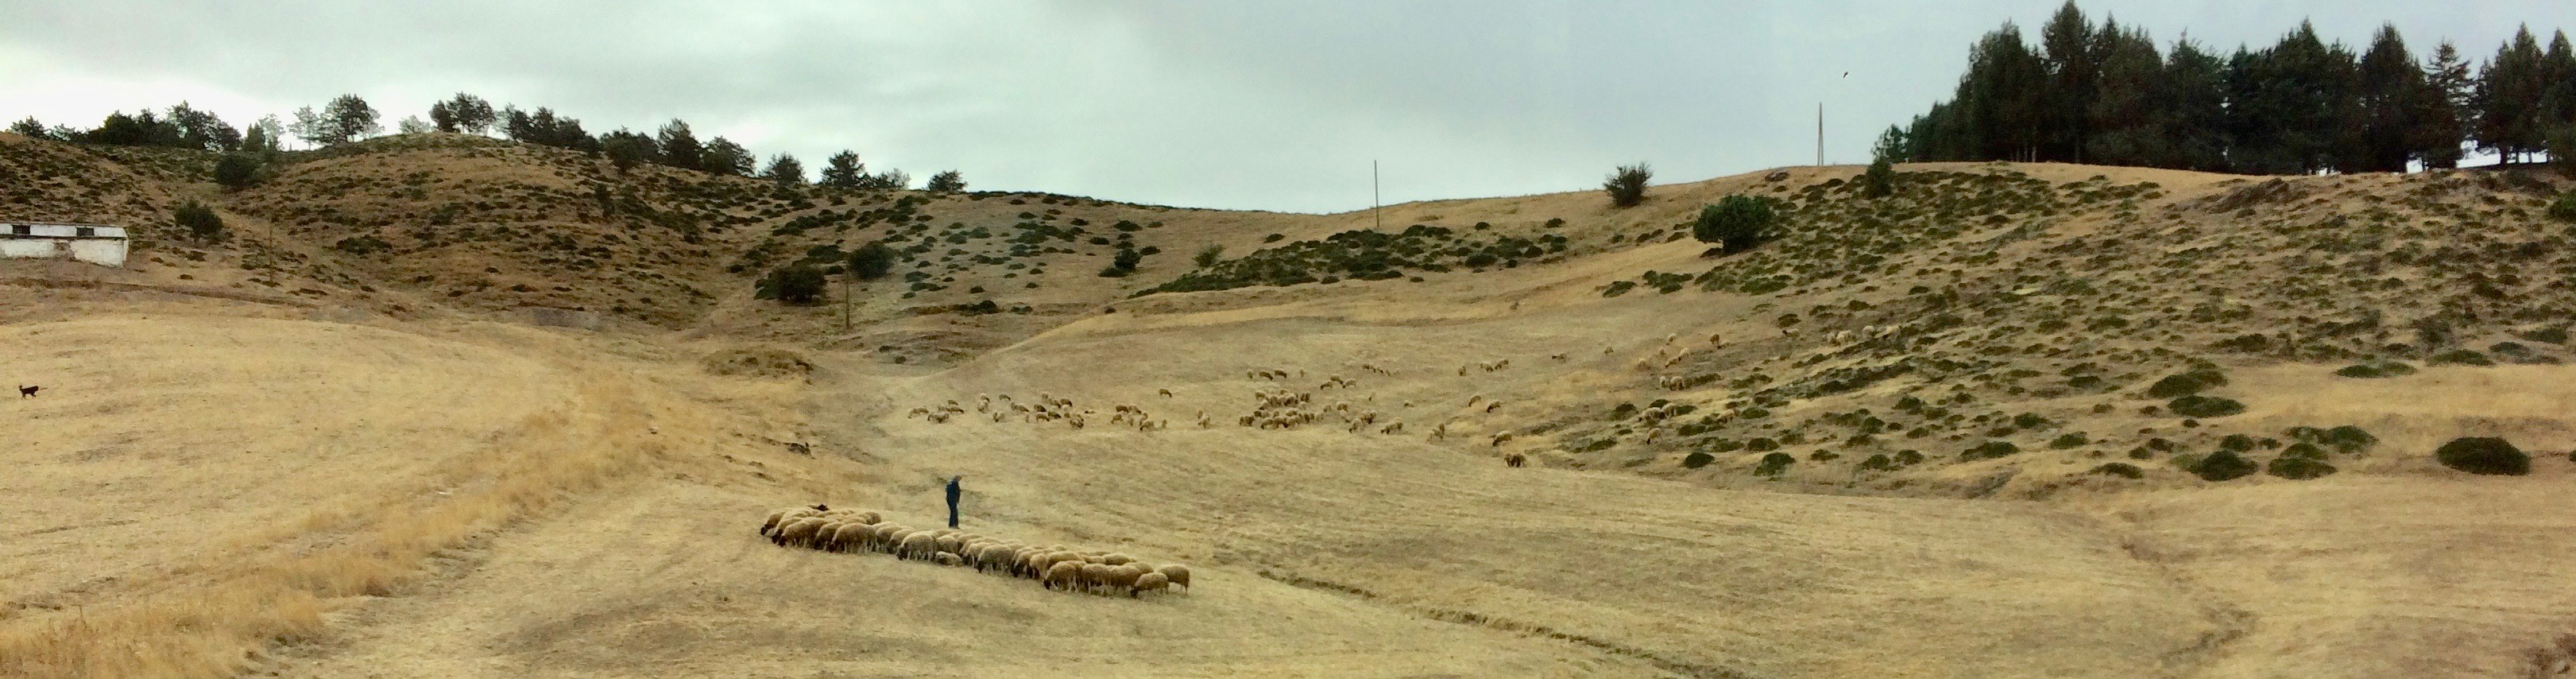 Shepherd and flock near Meknes